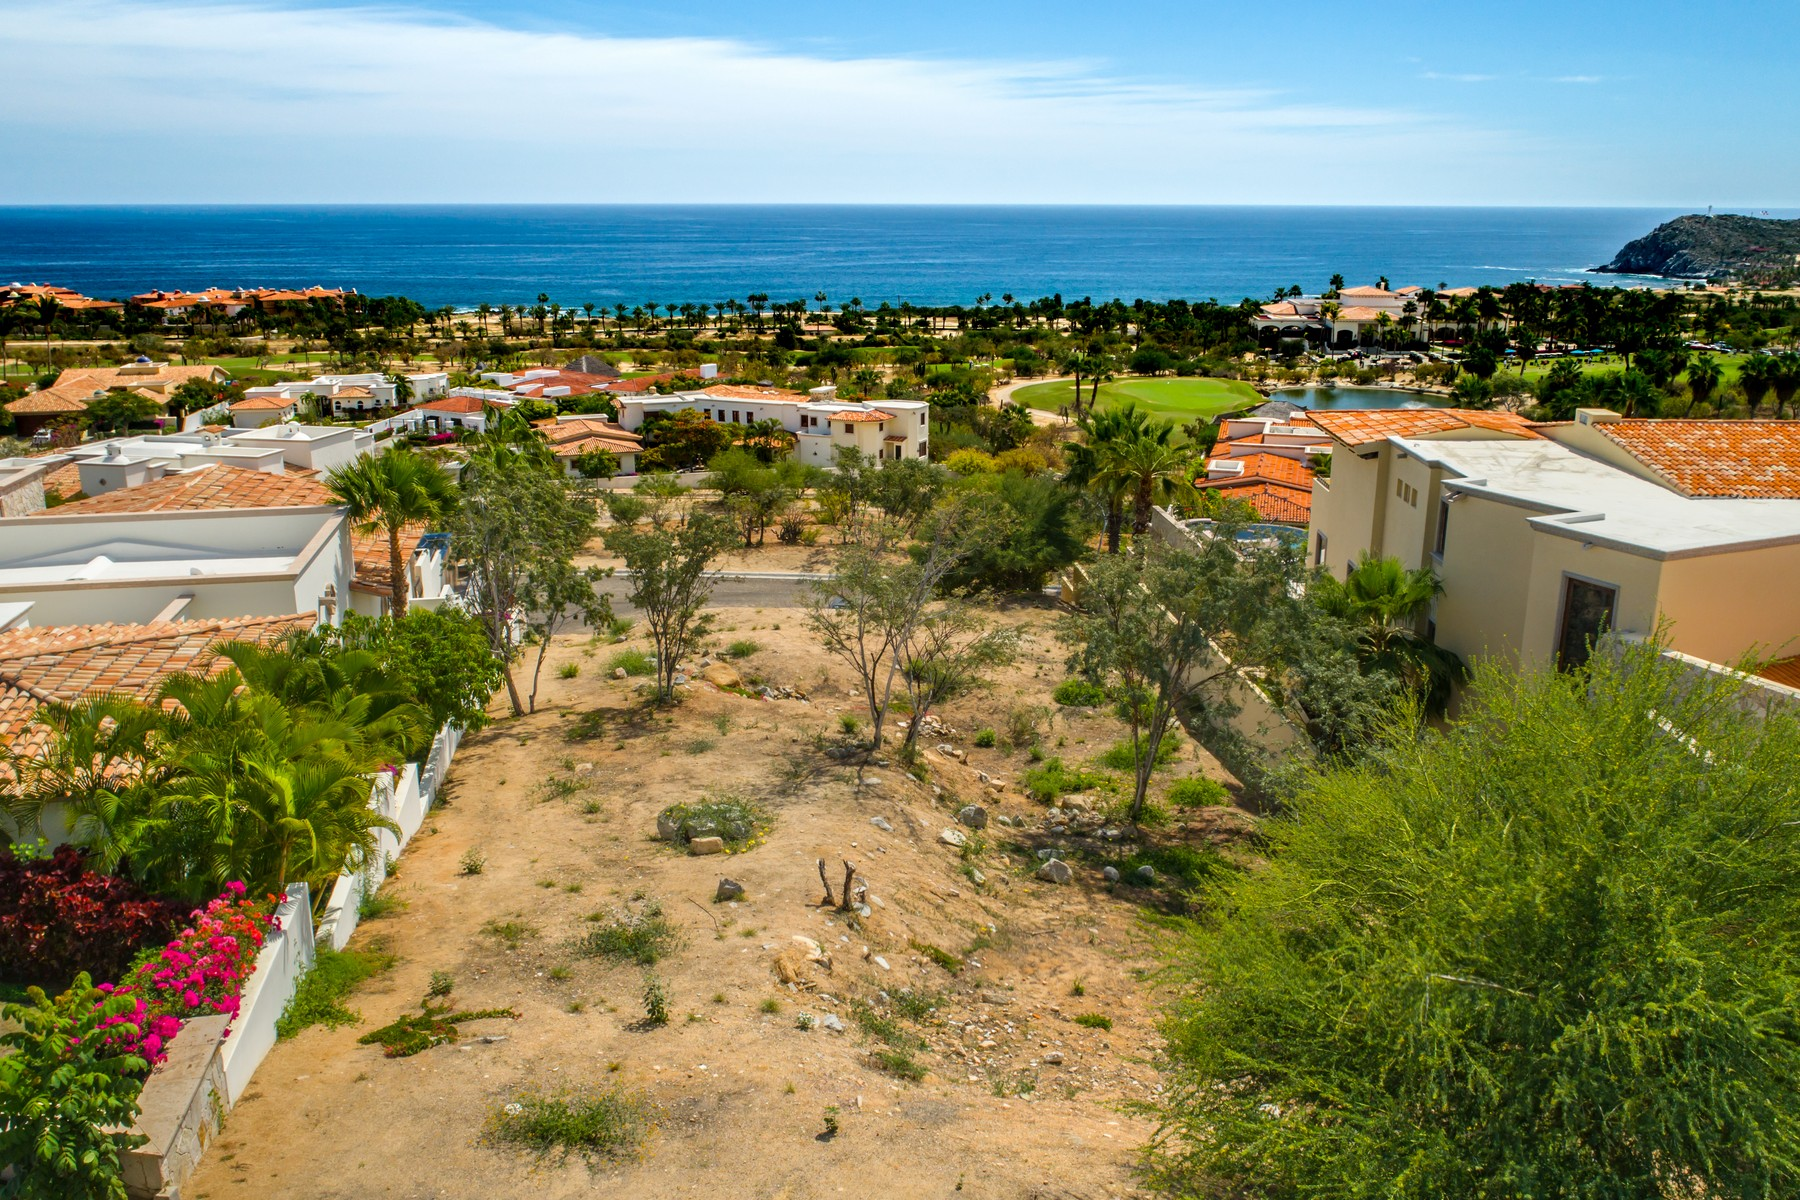 Land for Sale at Las Colinas Lote 19 Las Colinas Lote 19 Cabo del Sol Cabo San Lucas, Baja California Sur 23455 Mexico